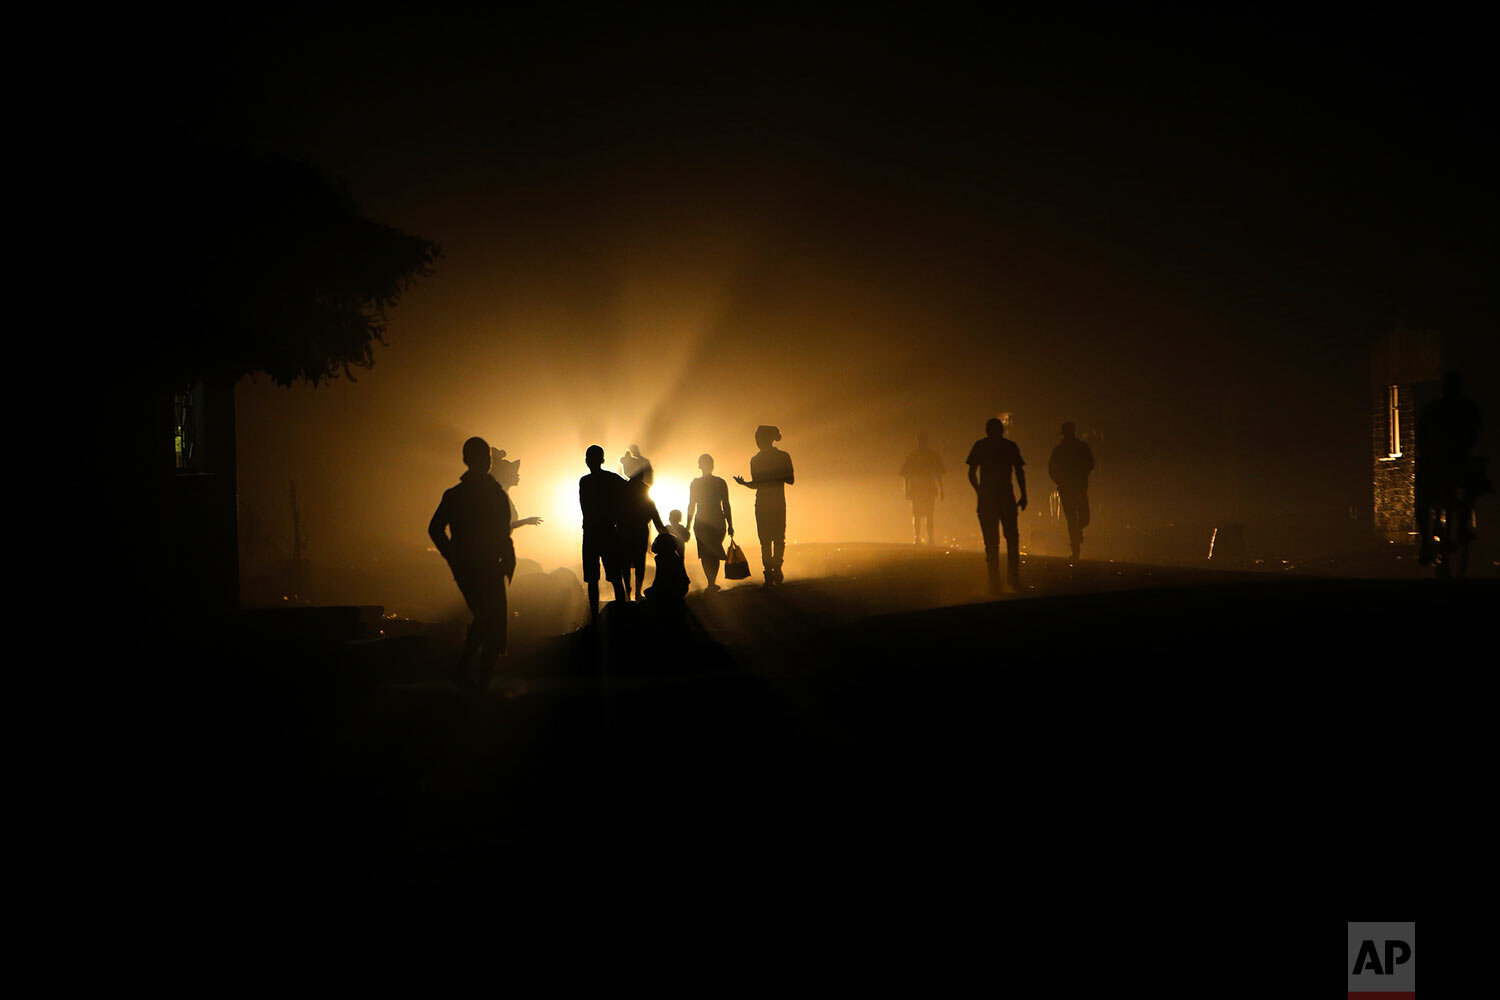 People walk home in the dark due to power shortages in Harare, on Monday Sept. 30, 2019. Zimbabwe's opposition lawmakers walked out of Parliament on Tuesday as President Emmerson Mnangagwa presented his state of the nation address, a sign of the political tensions still gripping the country. (AP Photo/Tsvangirayi Mukwazhi)